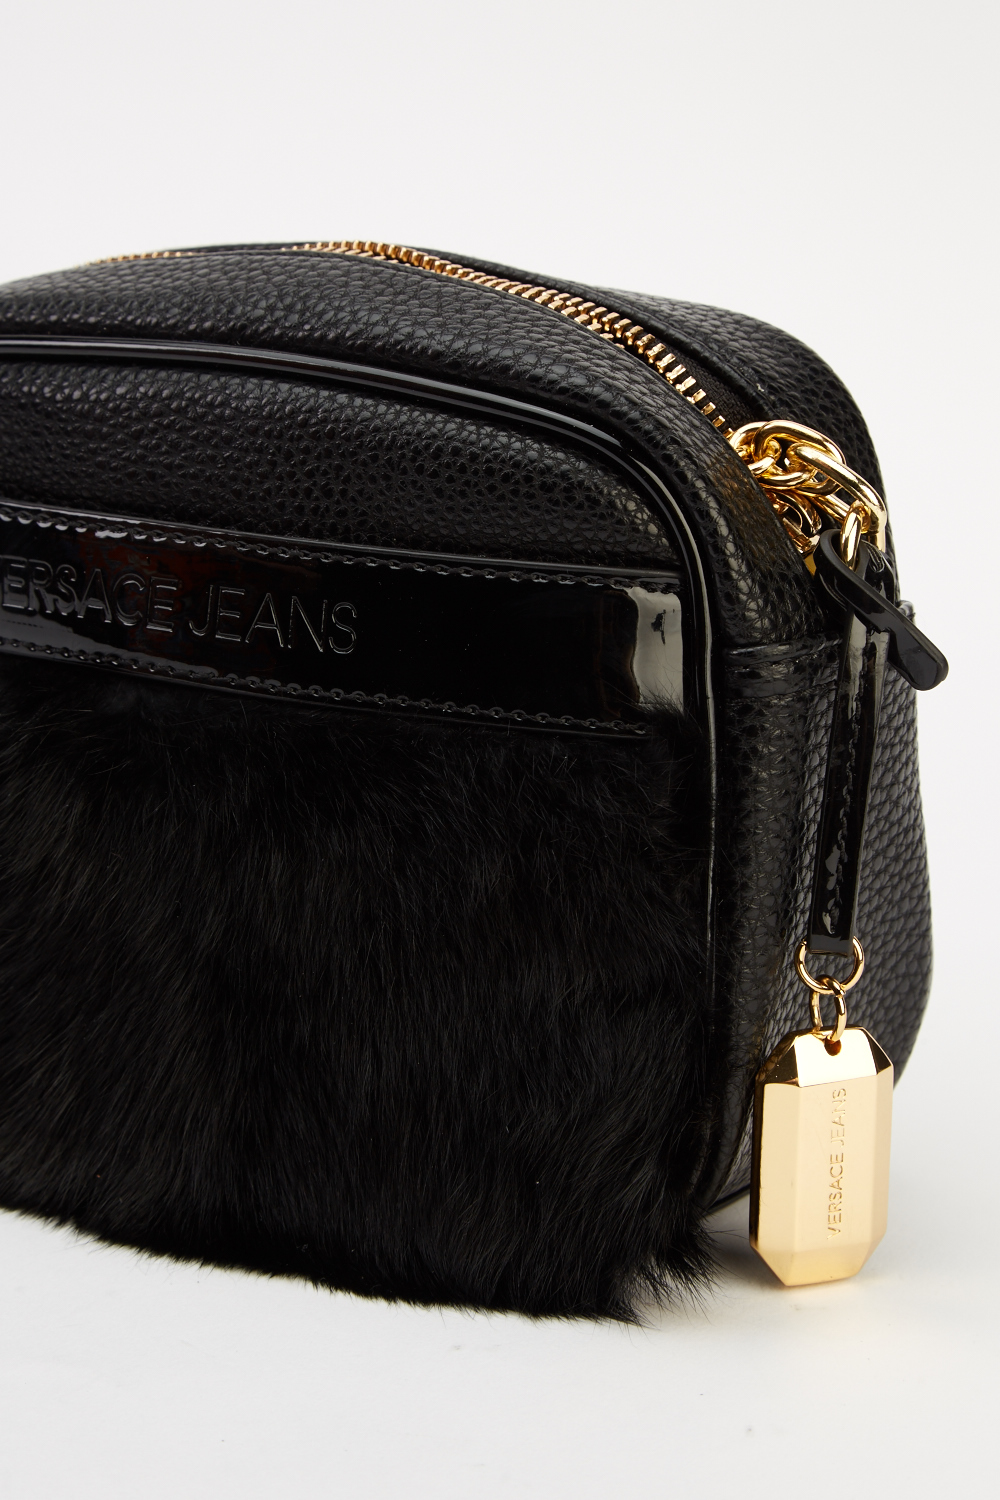 362e5956 Versace Jeans Small Bag